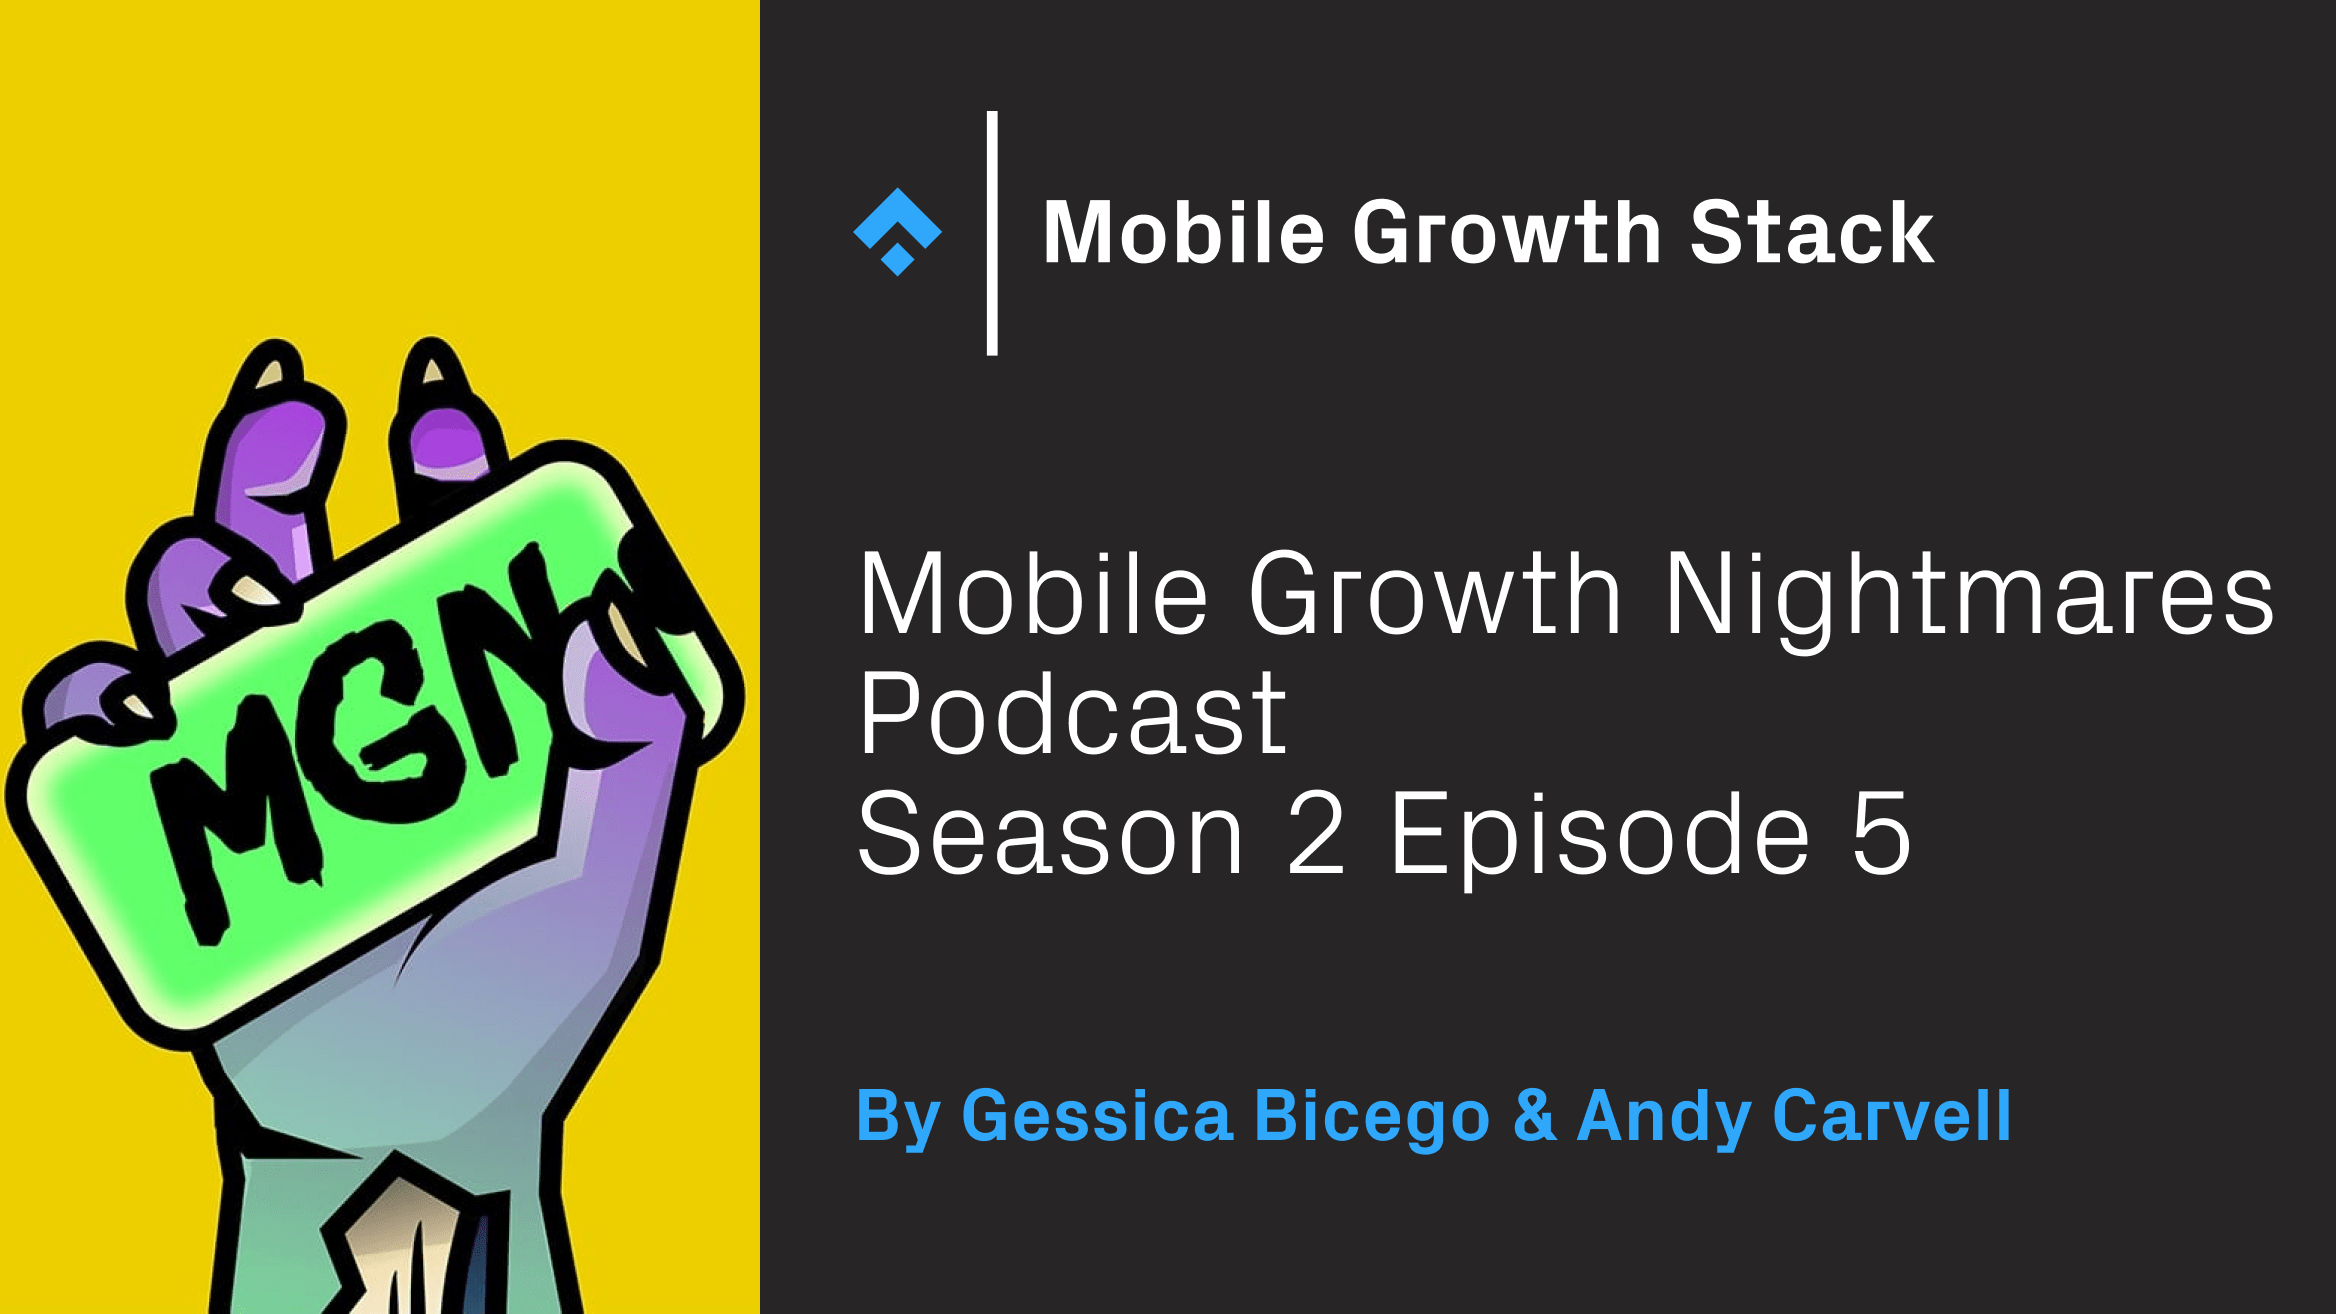 Mobile Growth Nightmares Episode 5